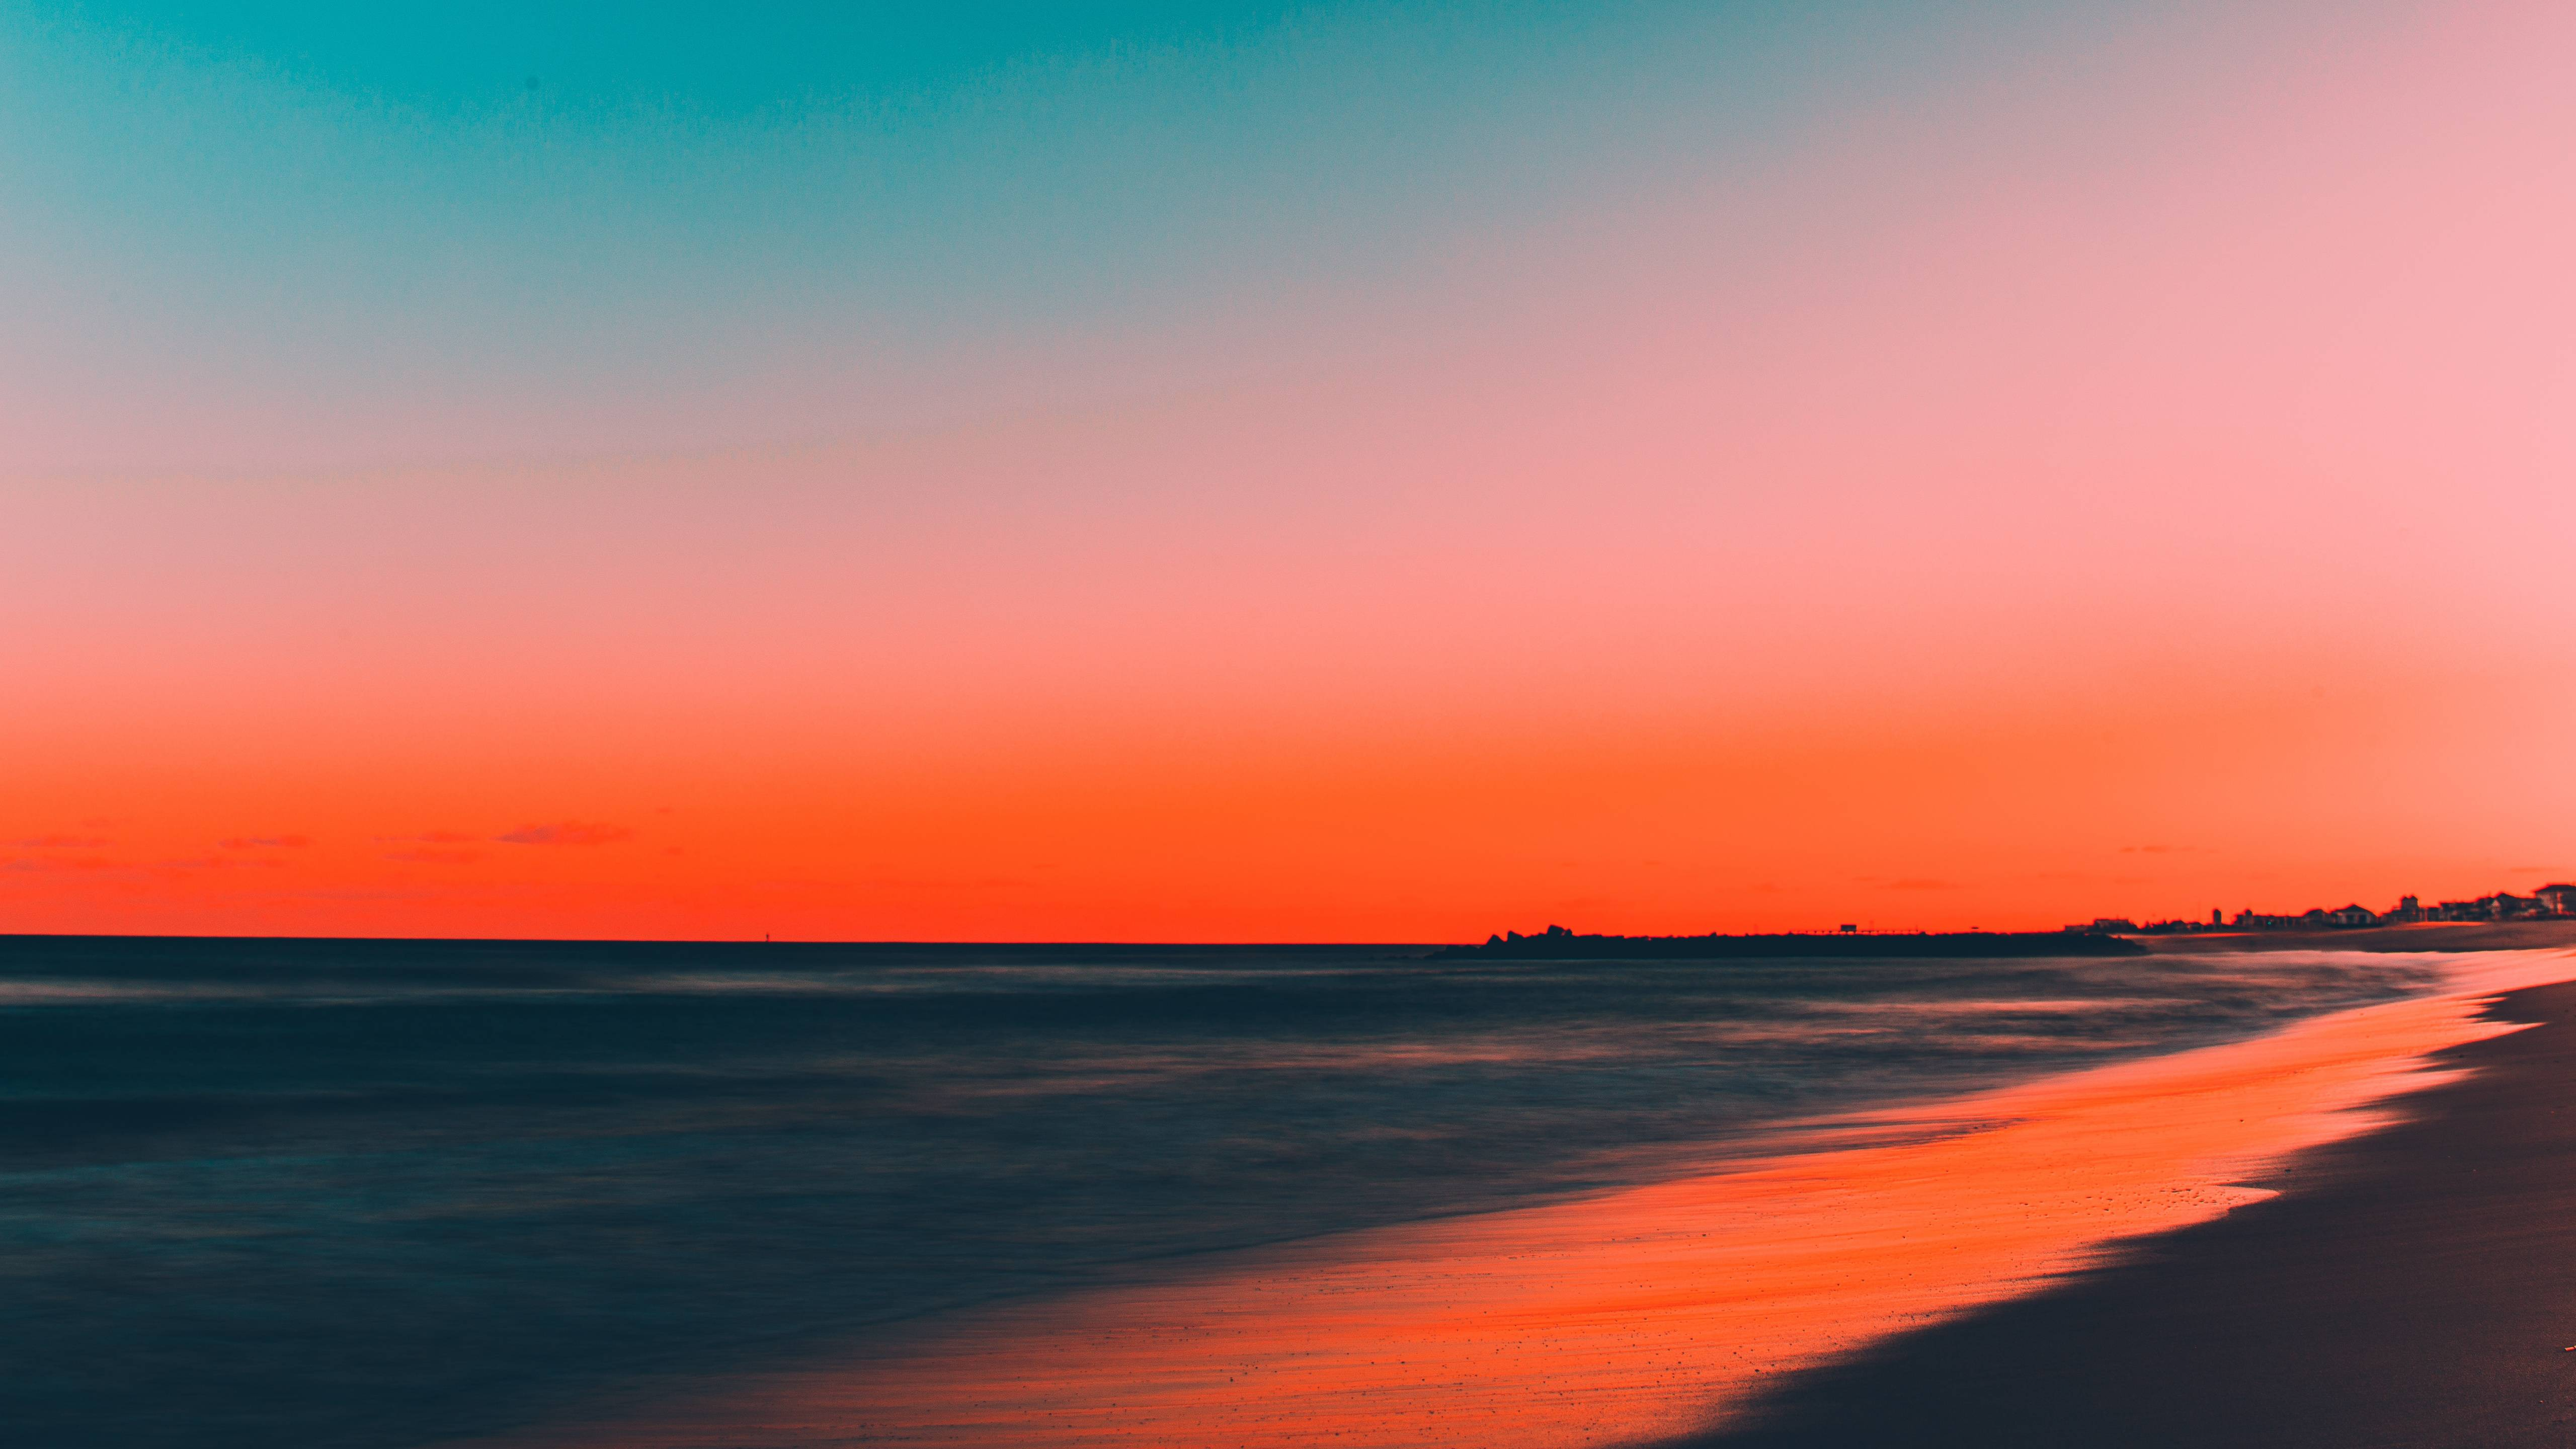 Download 5120x2880 wallpapers beach, clean sky, skyline, sunset, 5k